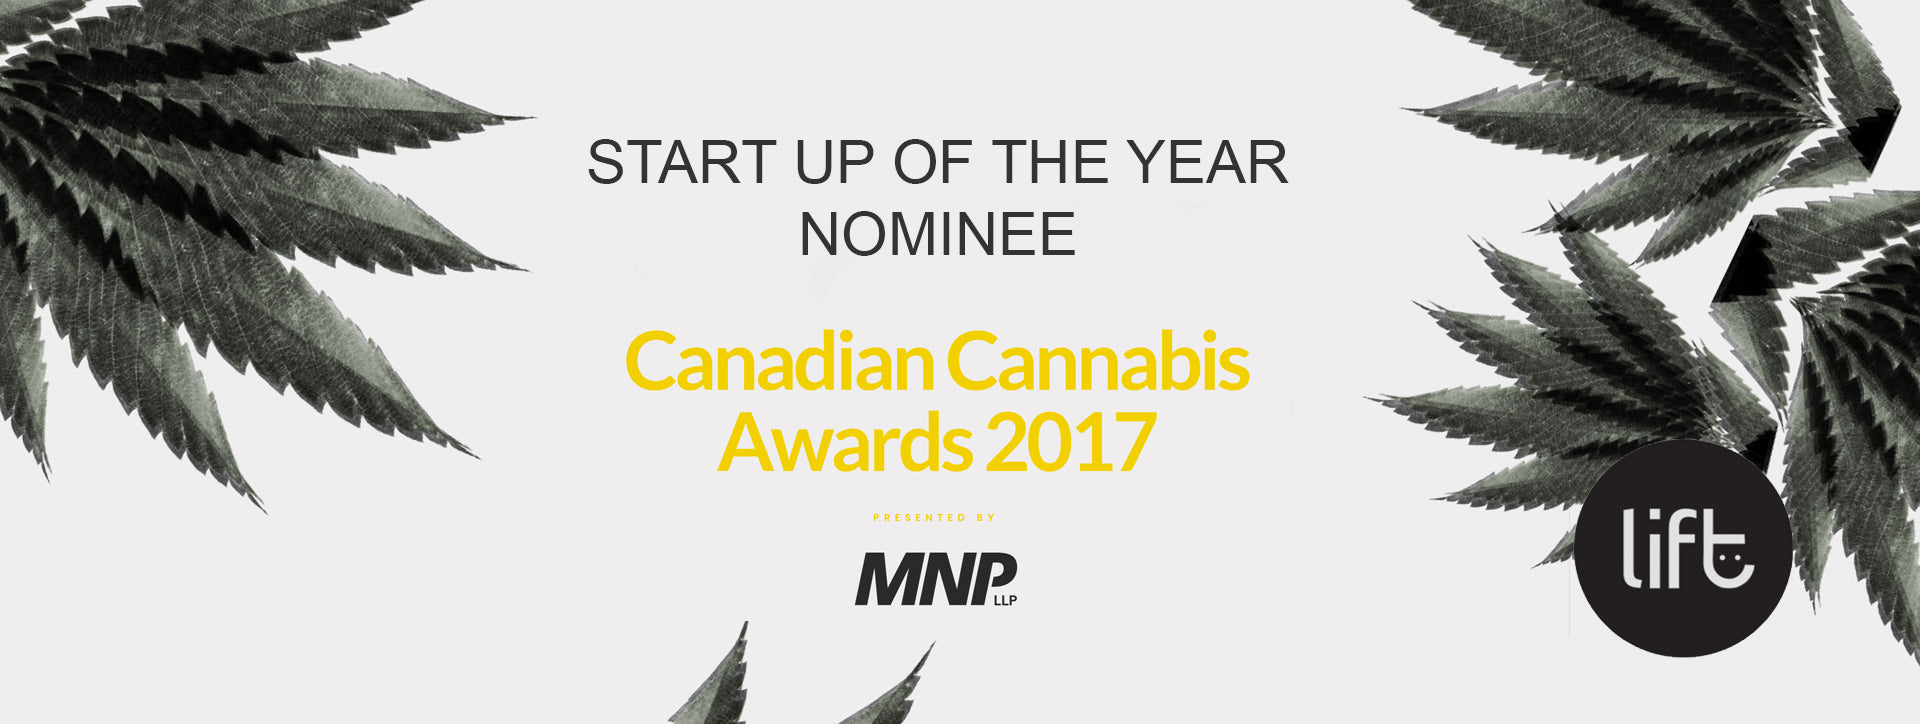 Canadian Cannabis Awards 2017